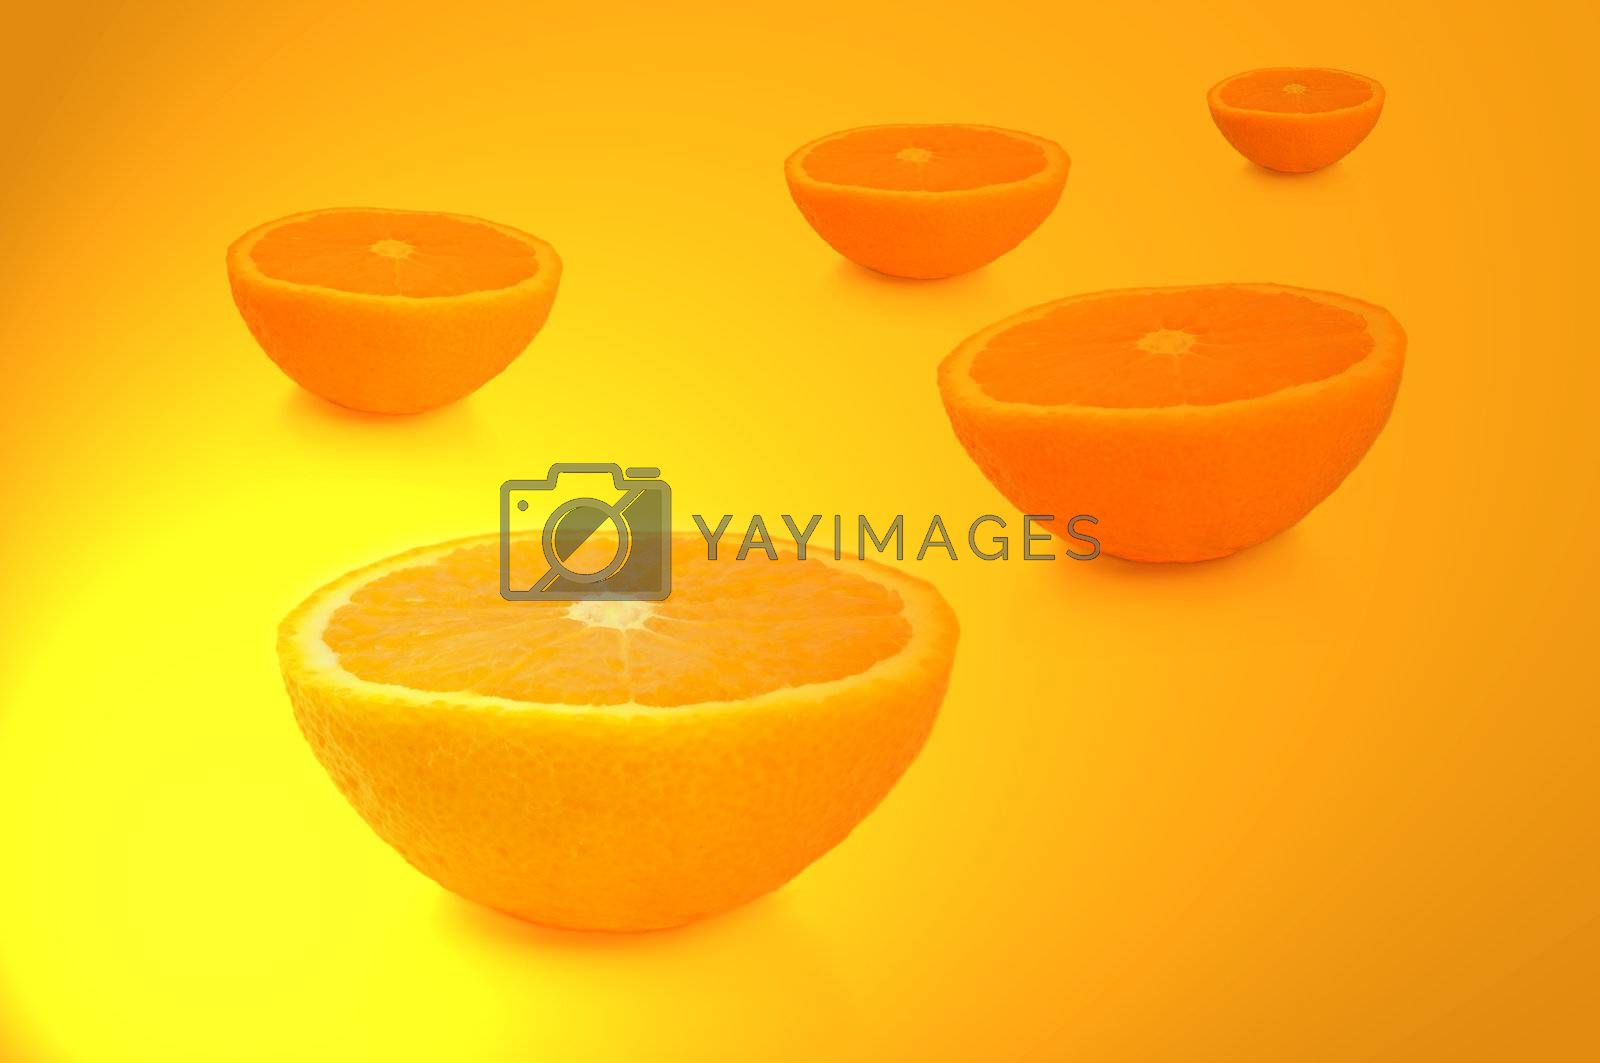 FIve freshly cut orange halves arranged over vibrant yellow and gold light effect.